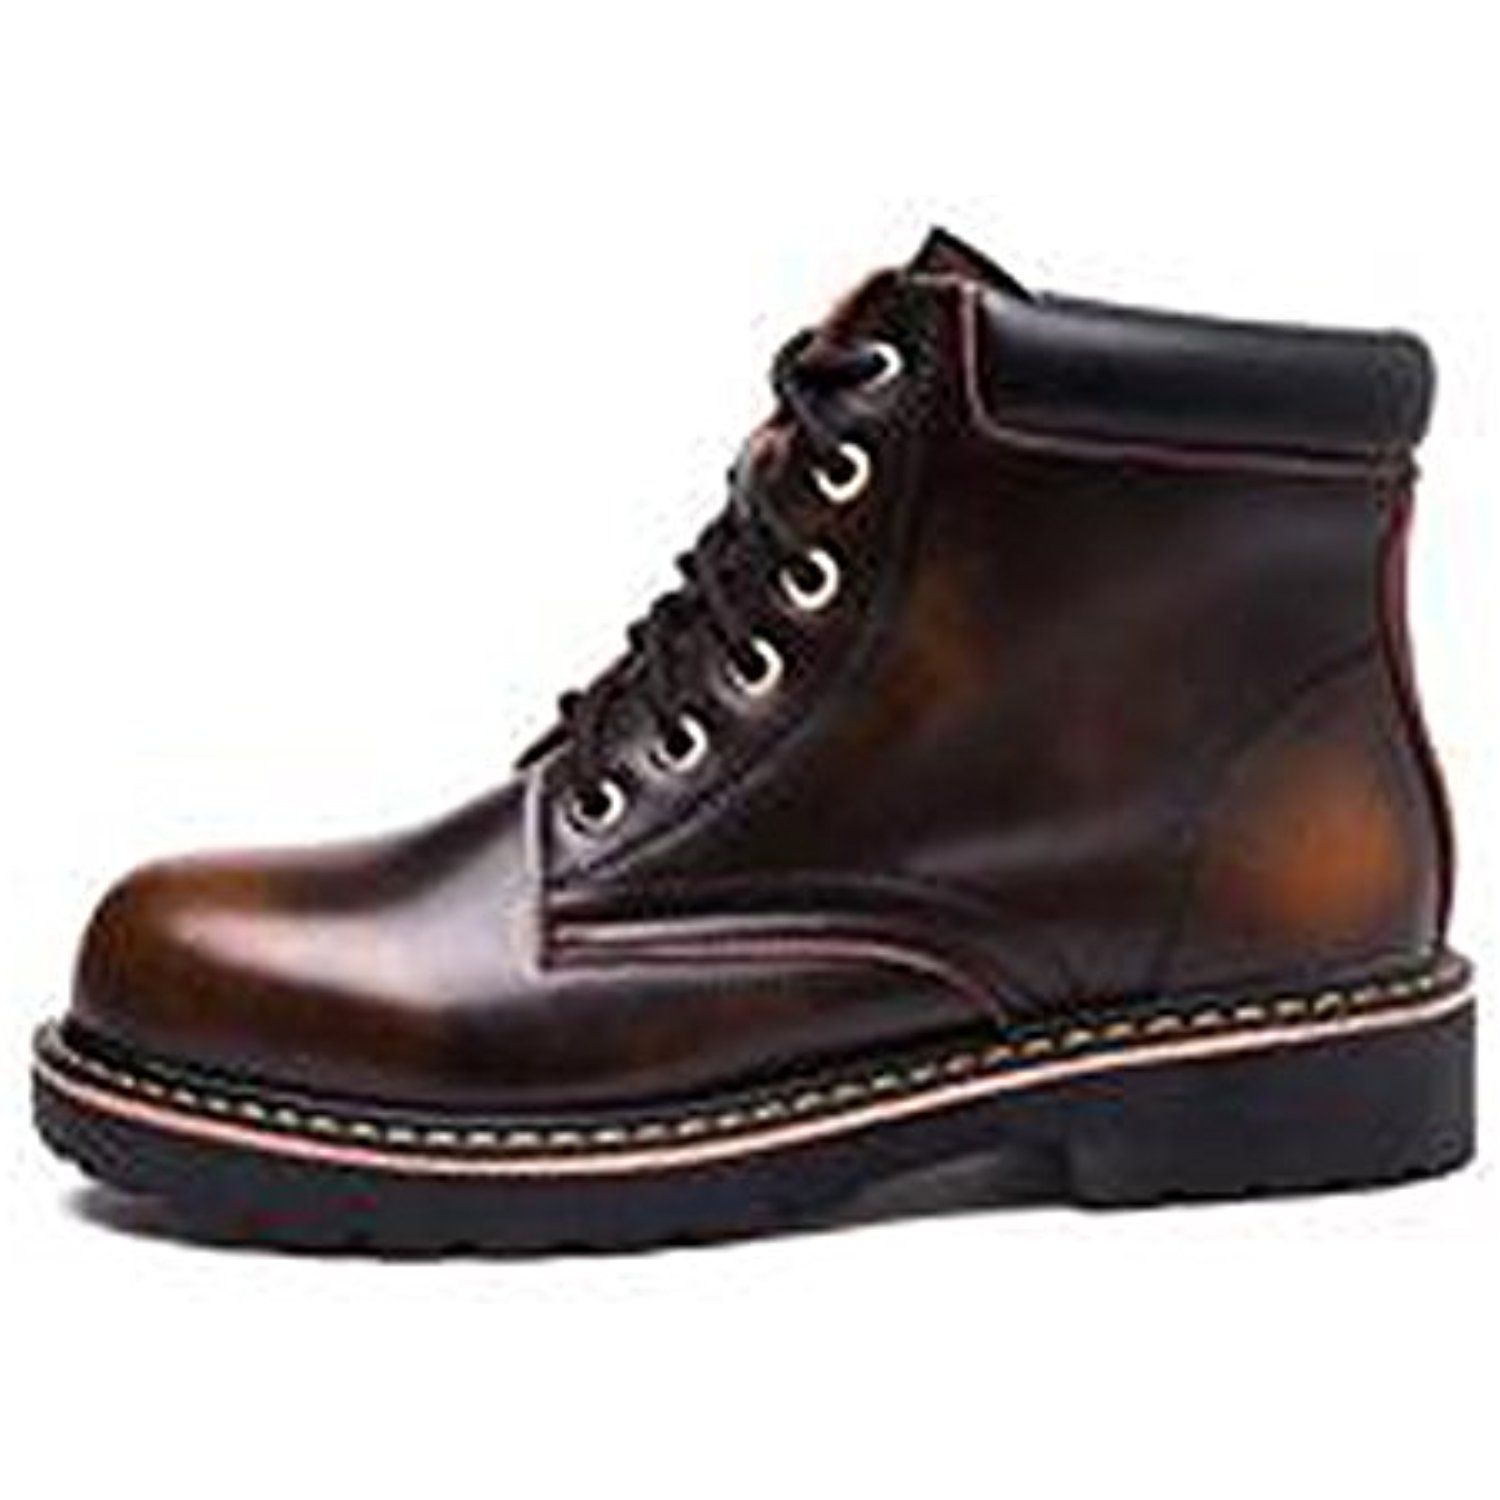 9f2c6f768c51 Women s Western Padded Military Combat Boots Flat Short Matin Booties      Click image for more details. (This is an affiliate link)  LoafersSlipOns